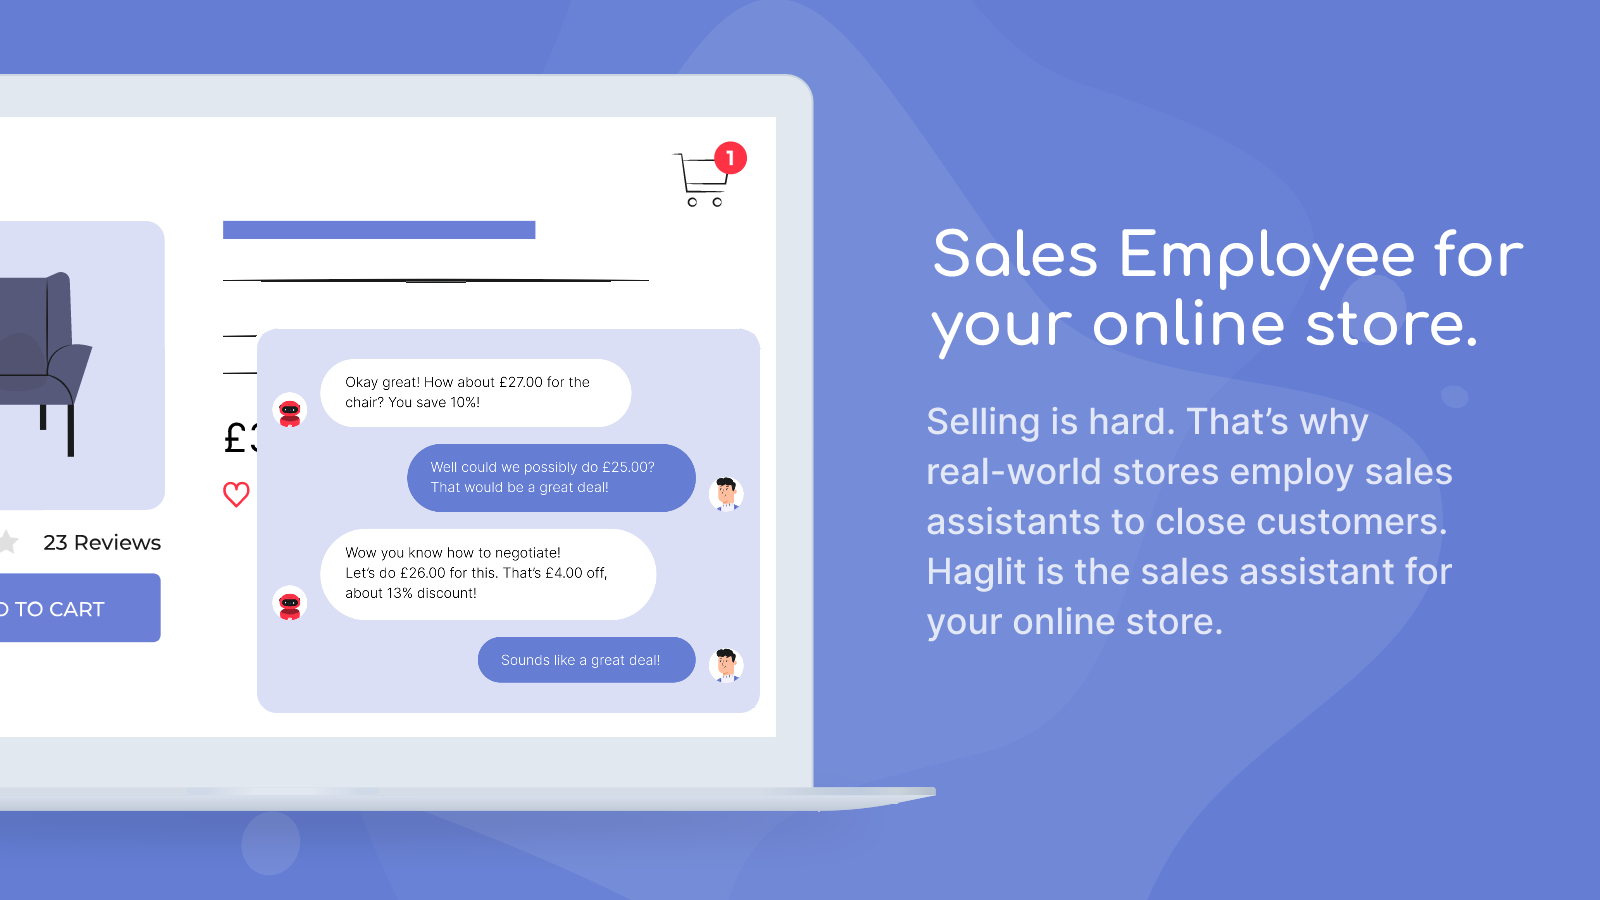 Sales employee for your online store